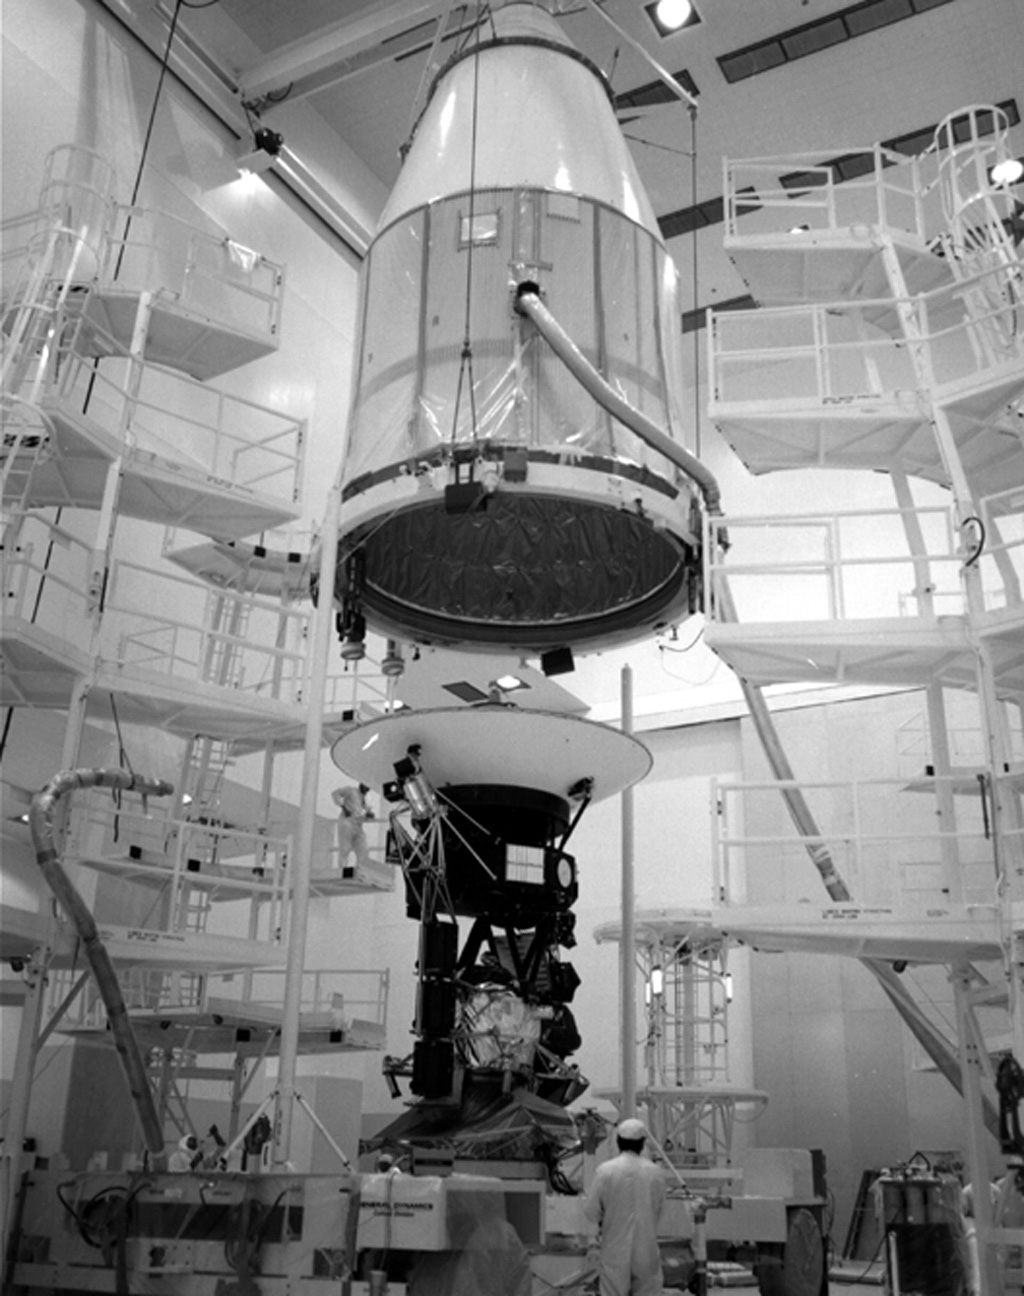 Space Images | Voyager 2 Encapsulation